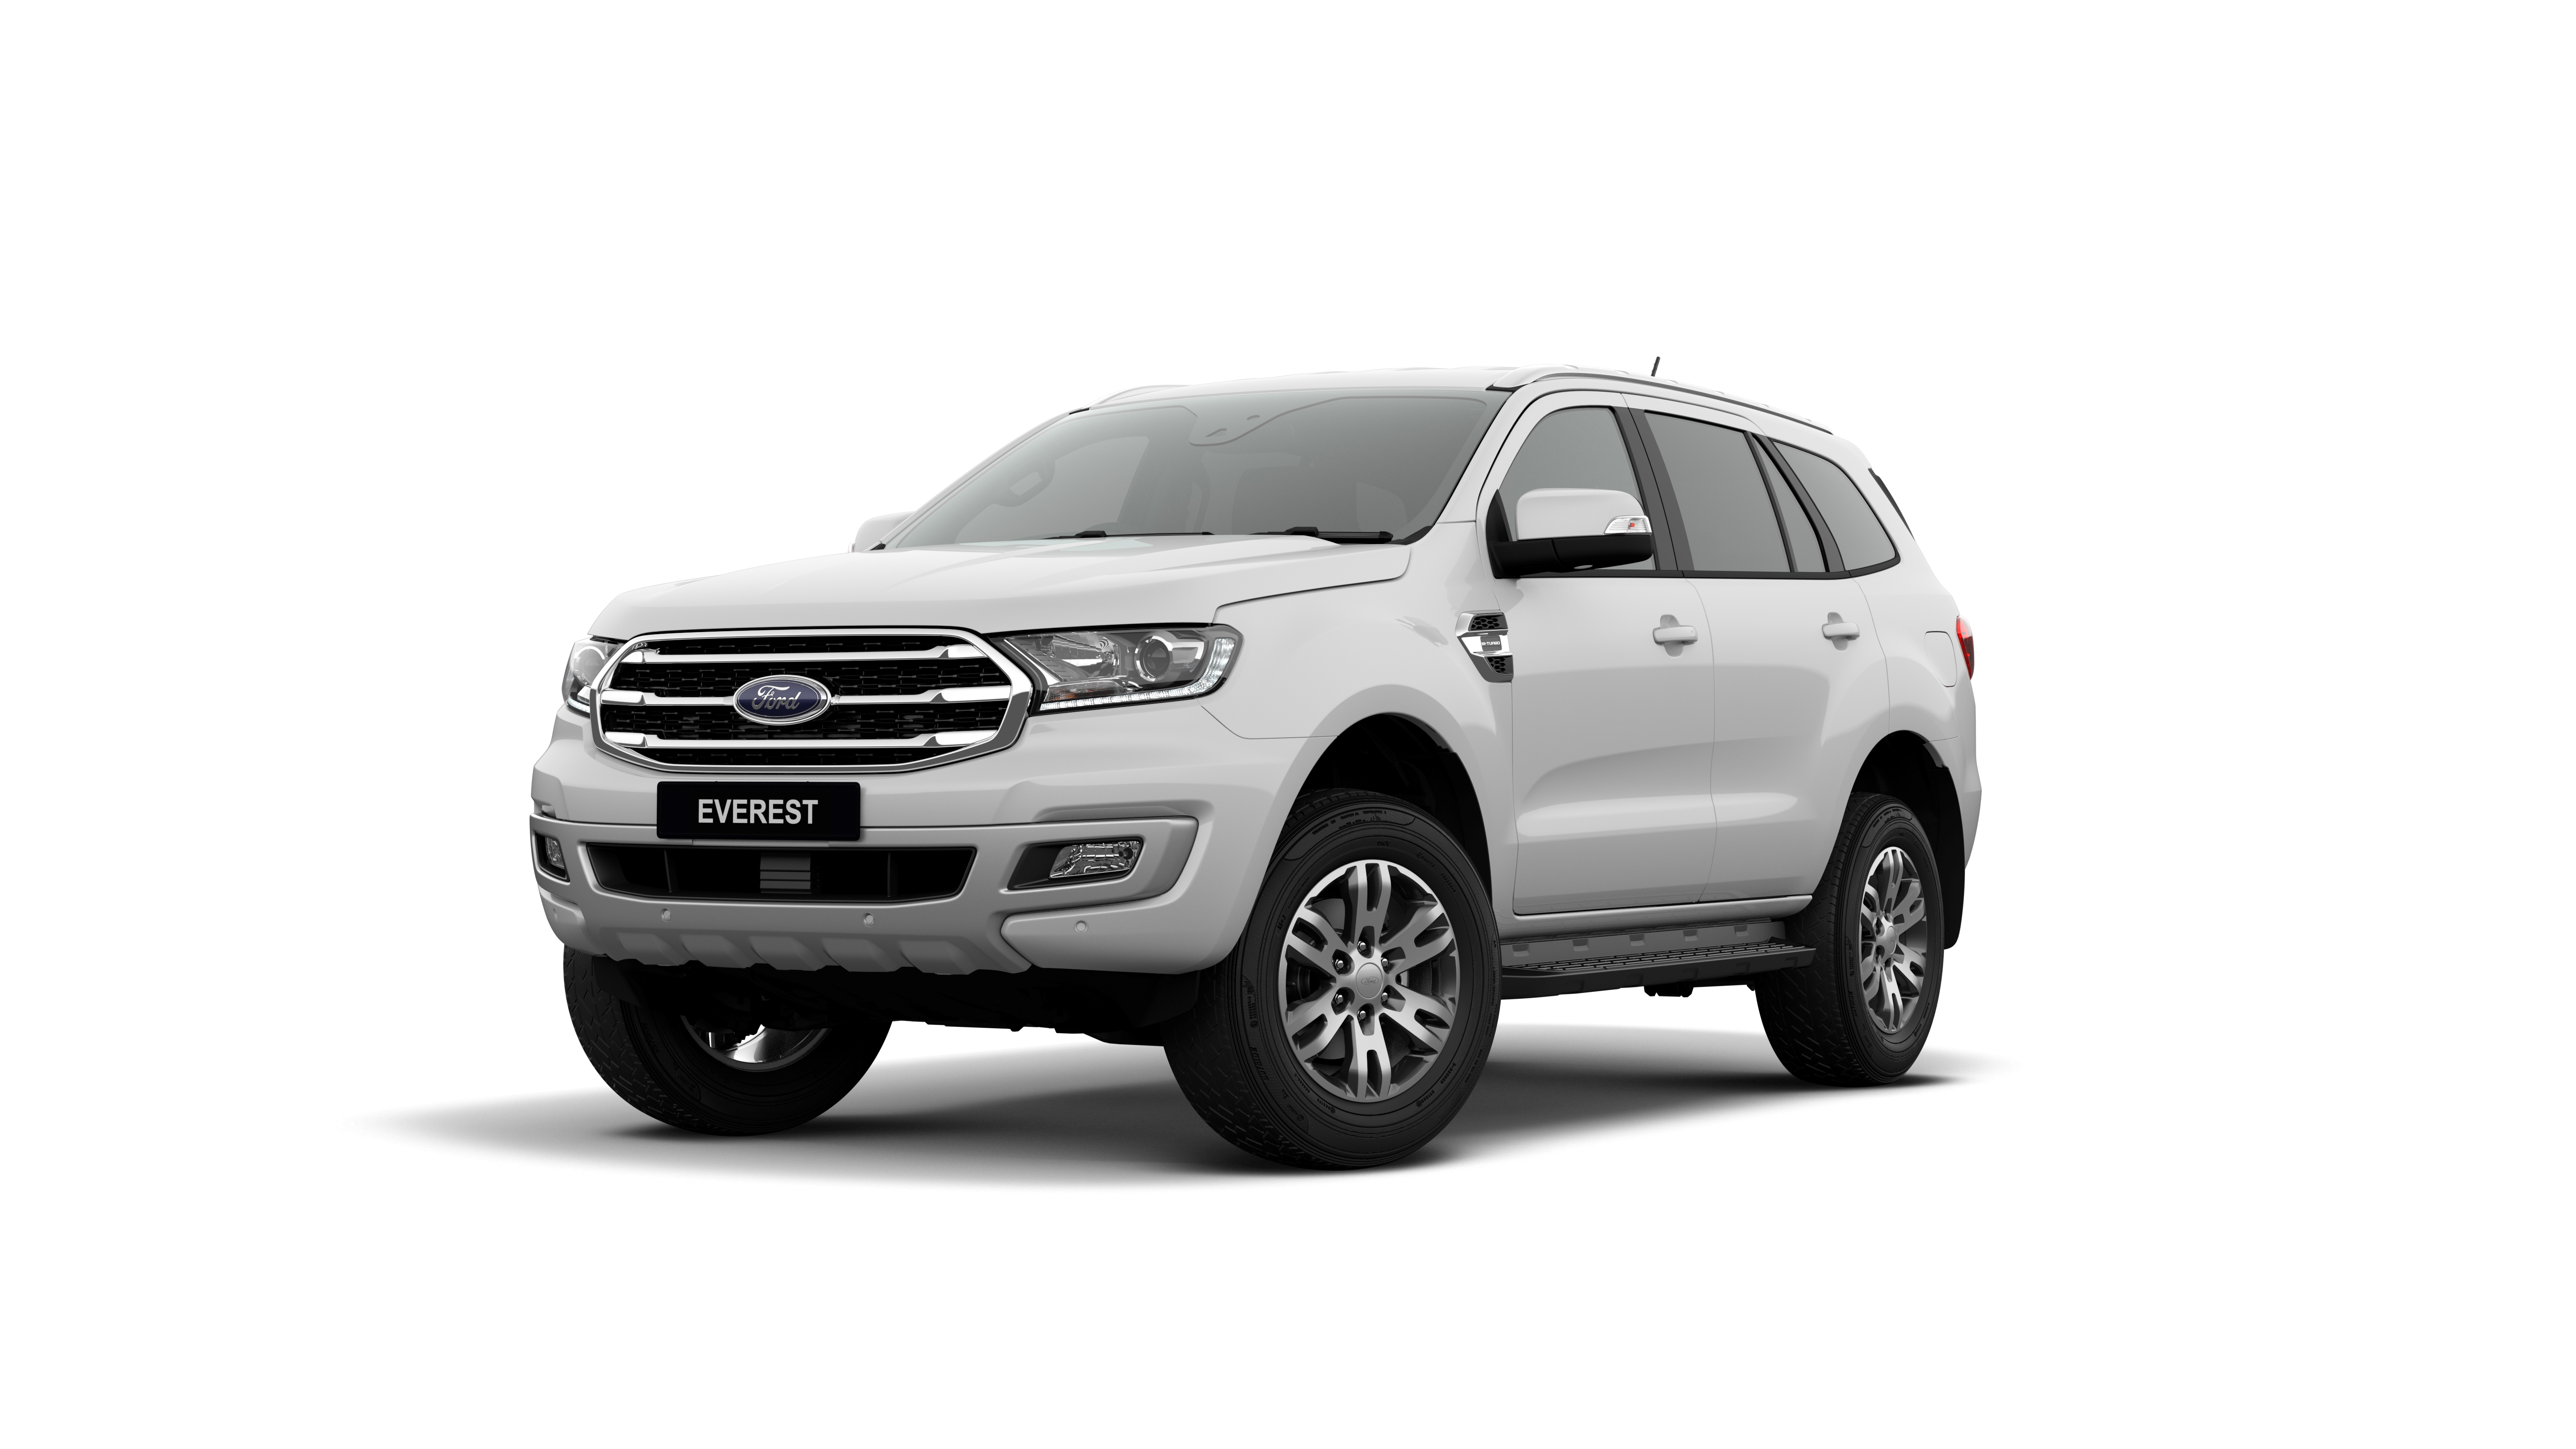 MY2019.75 Ford Everest Trend 3.2 auto 4WD from $56990